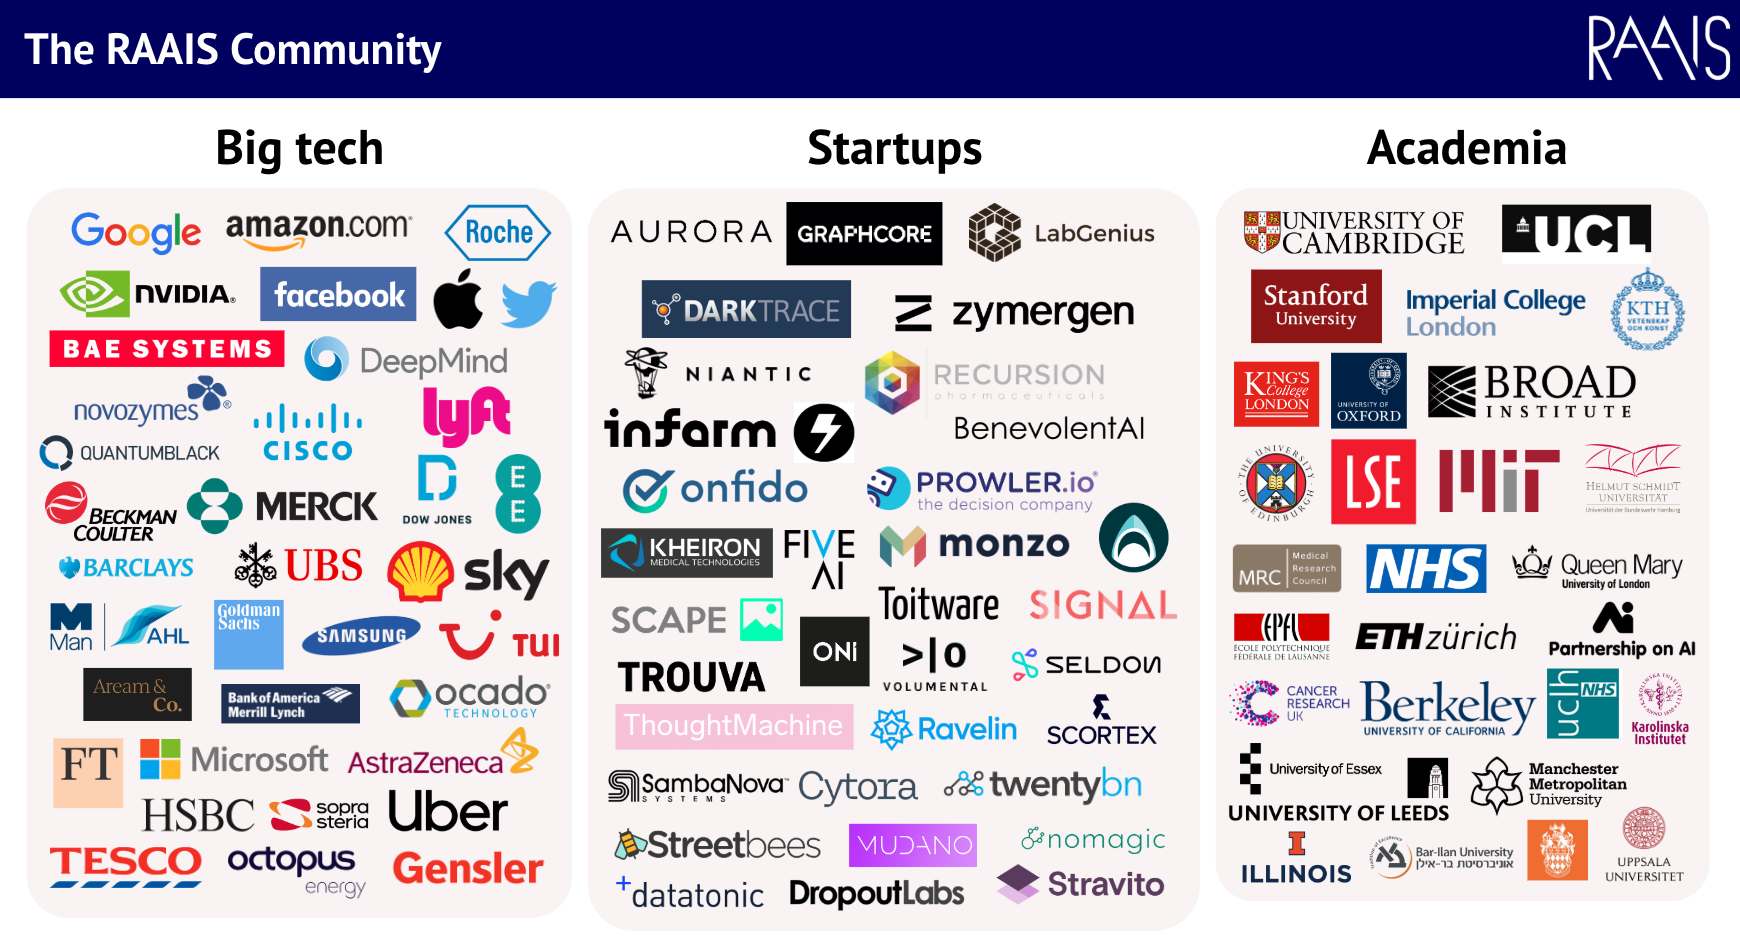 The RAAIS community of tech companies, startups and academia